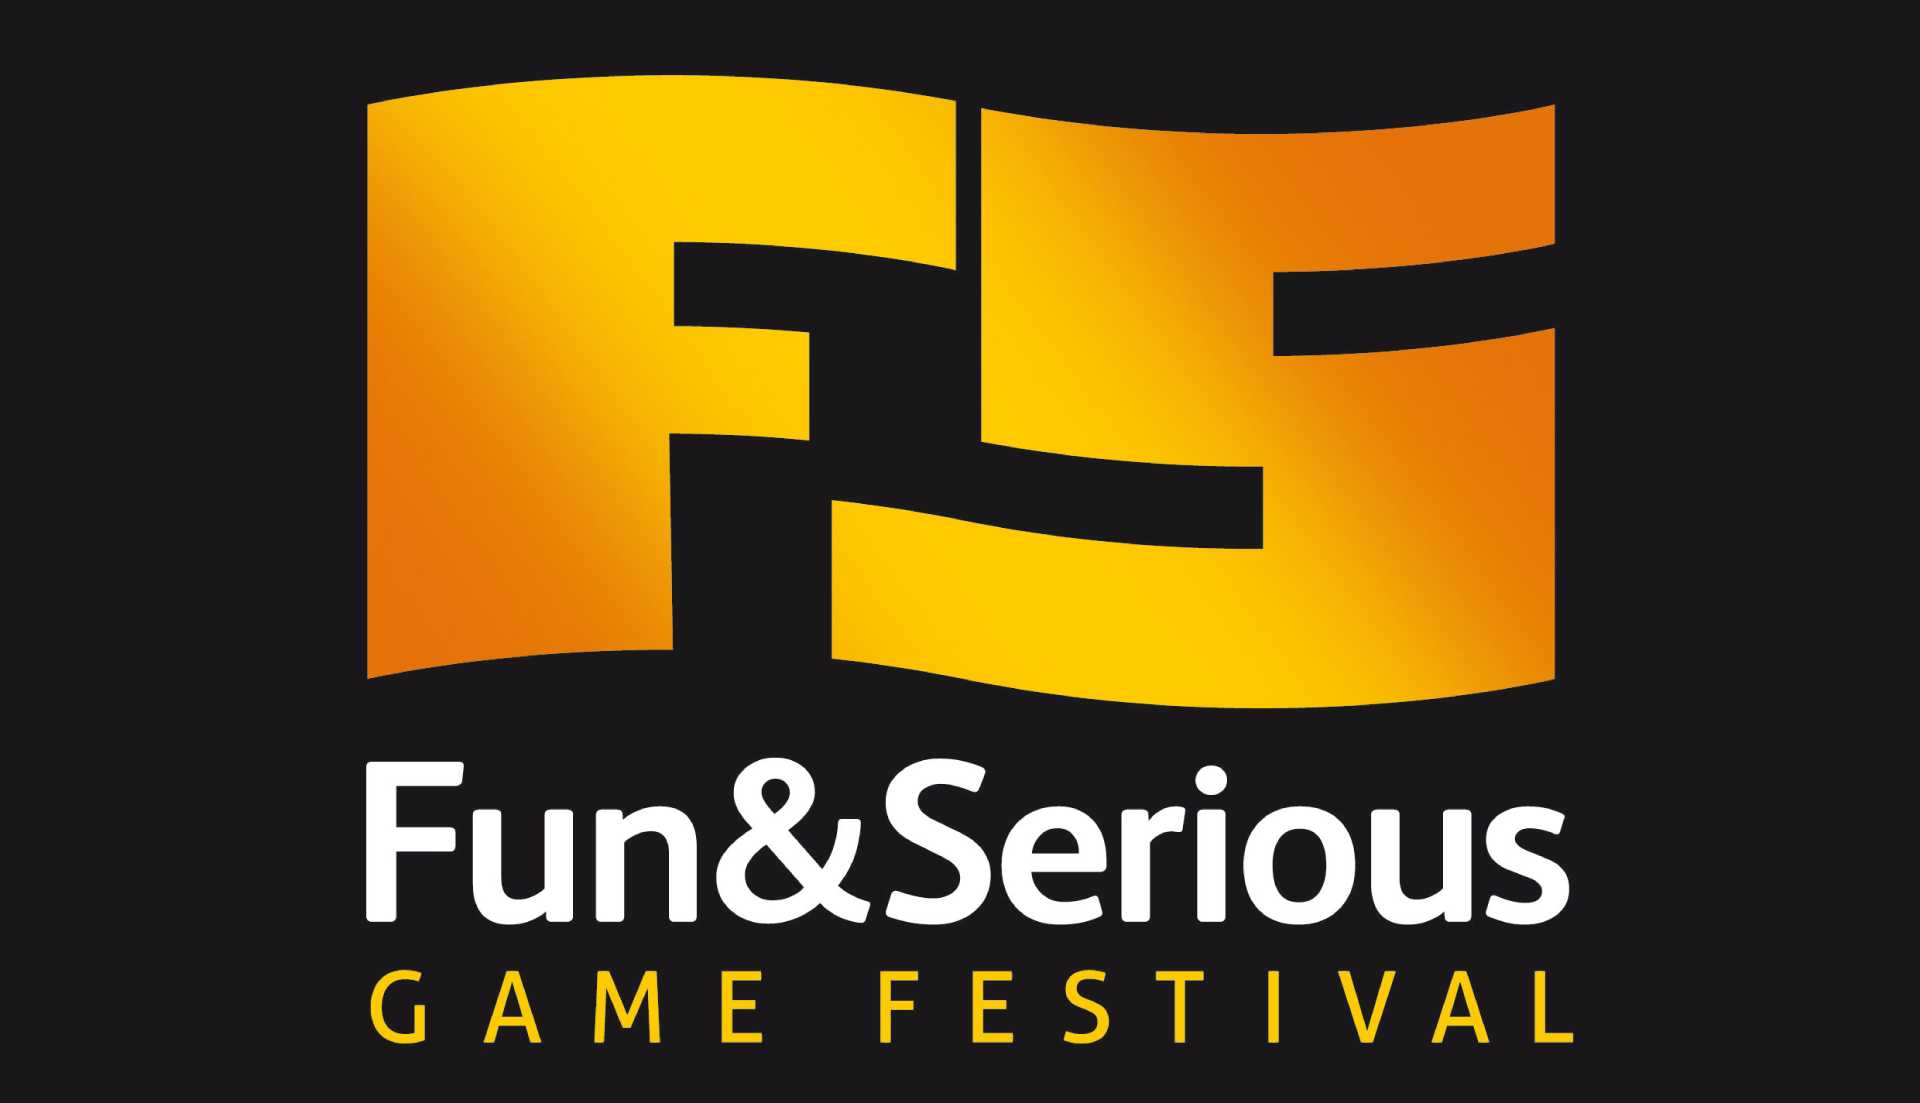 Fun & Serious Game Festival confirms final roster of talks by key names in the gaming industry